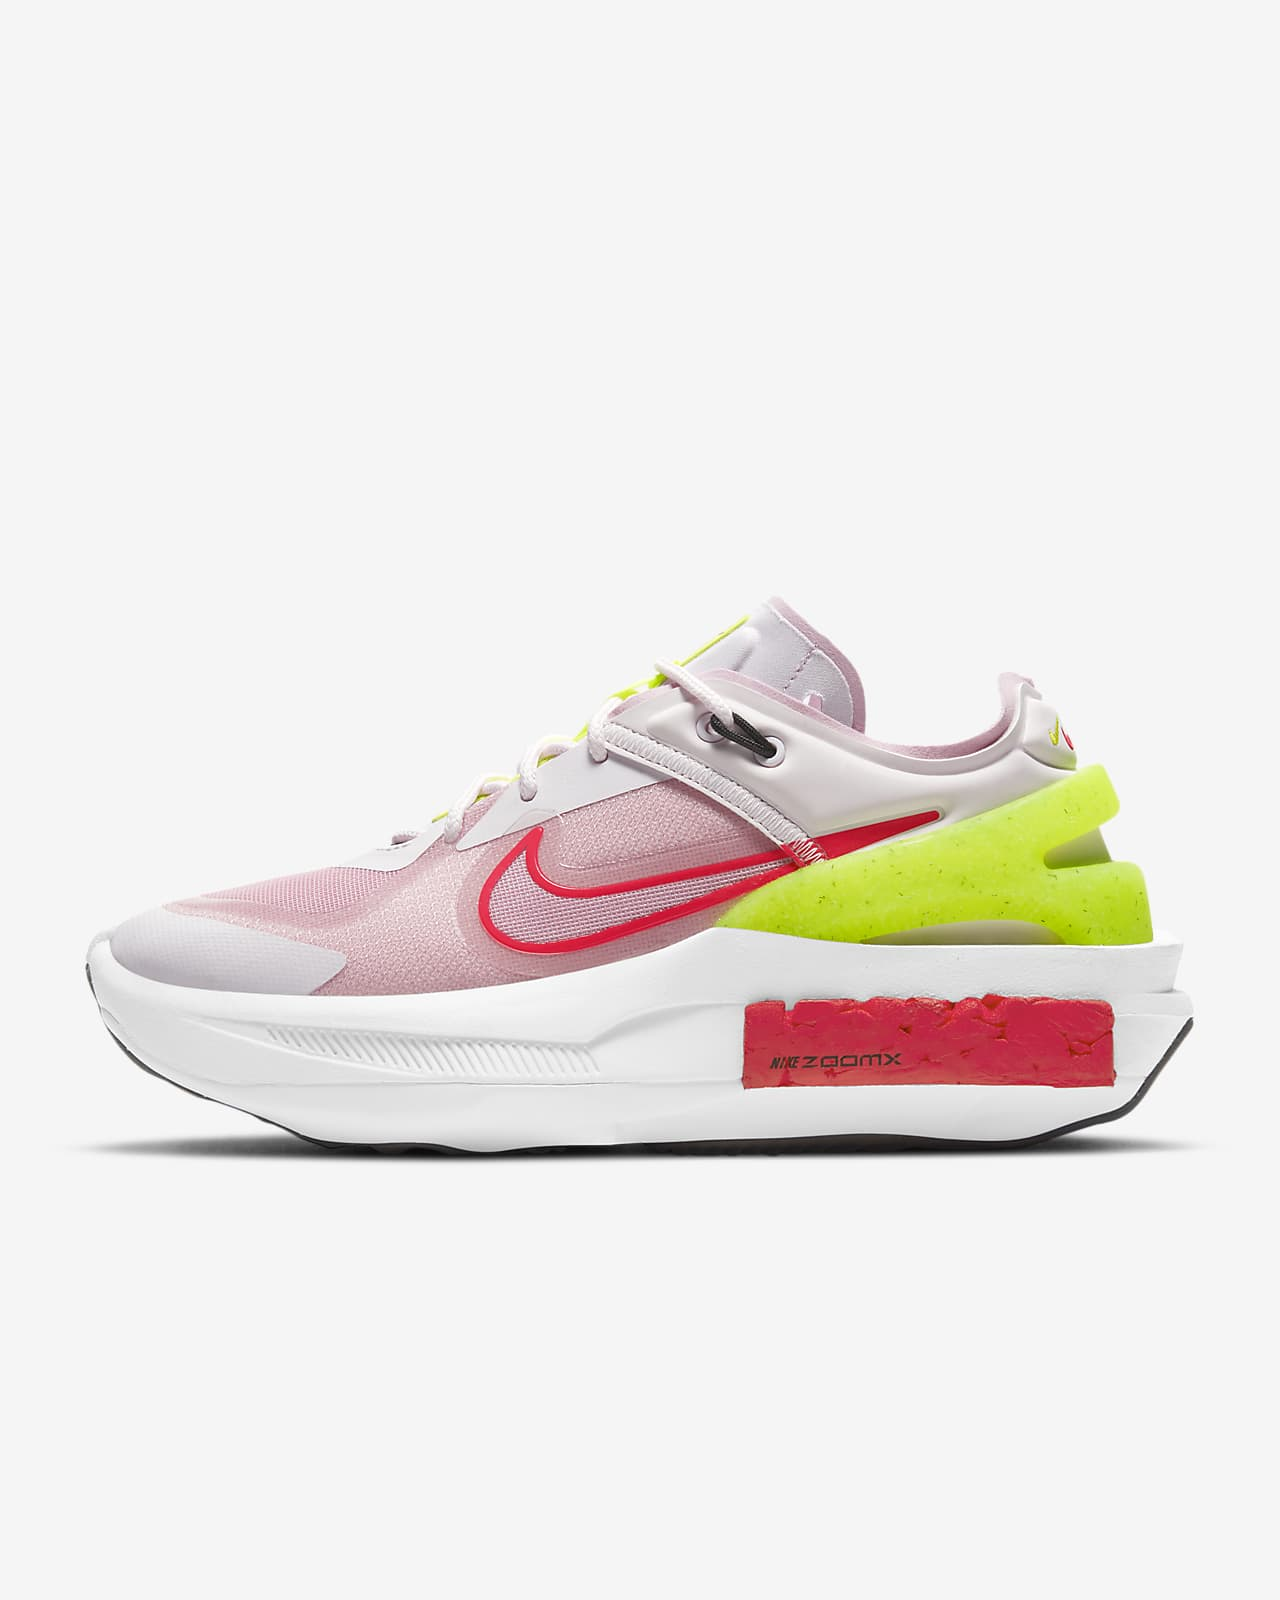 Nike Fontanka Edge Women's Shoe